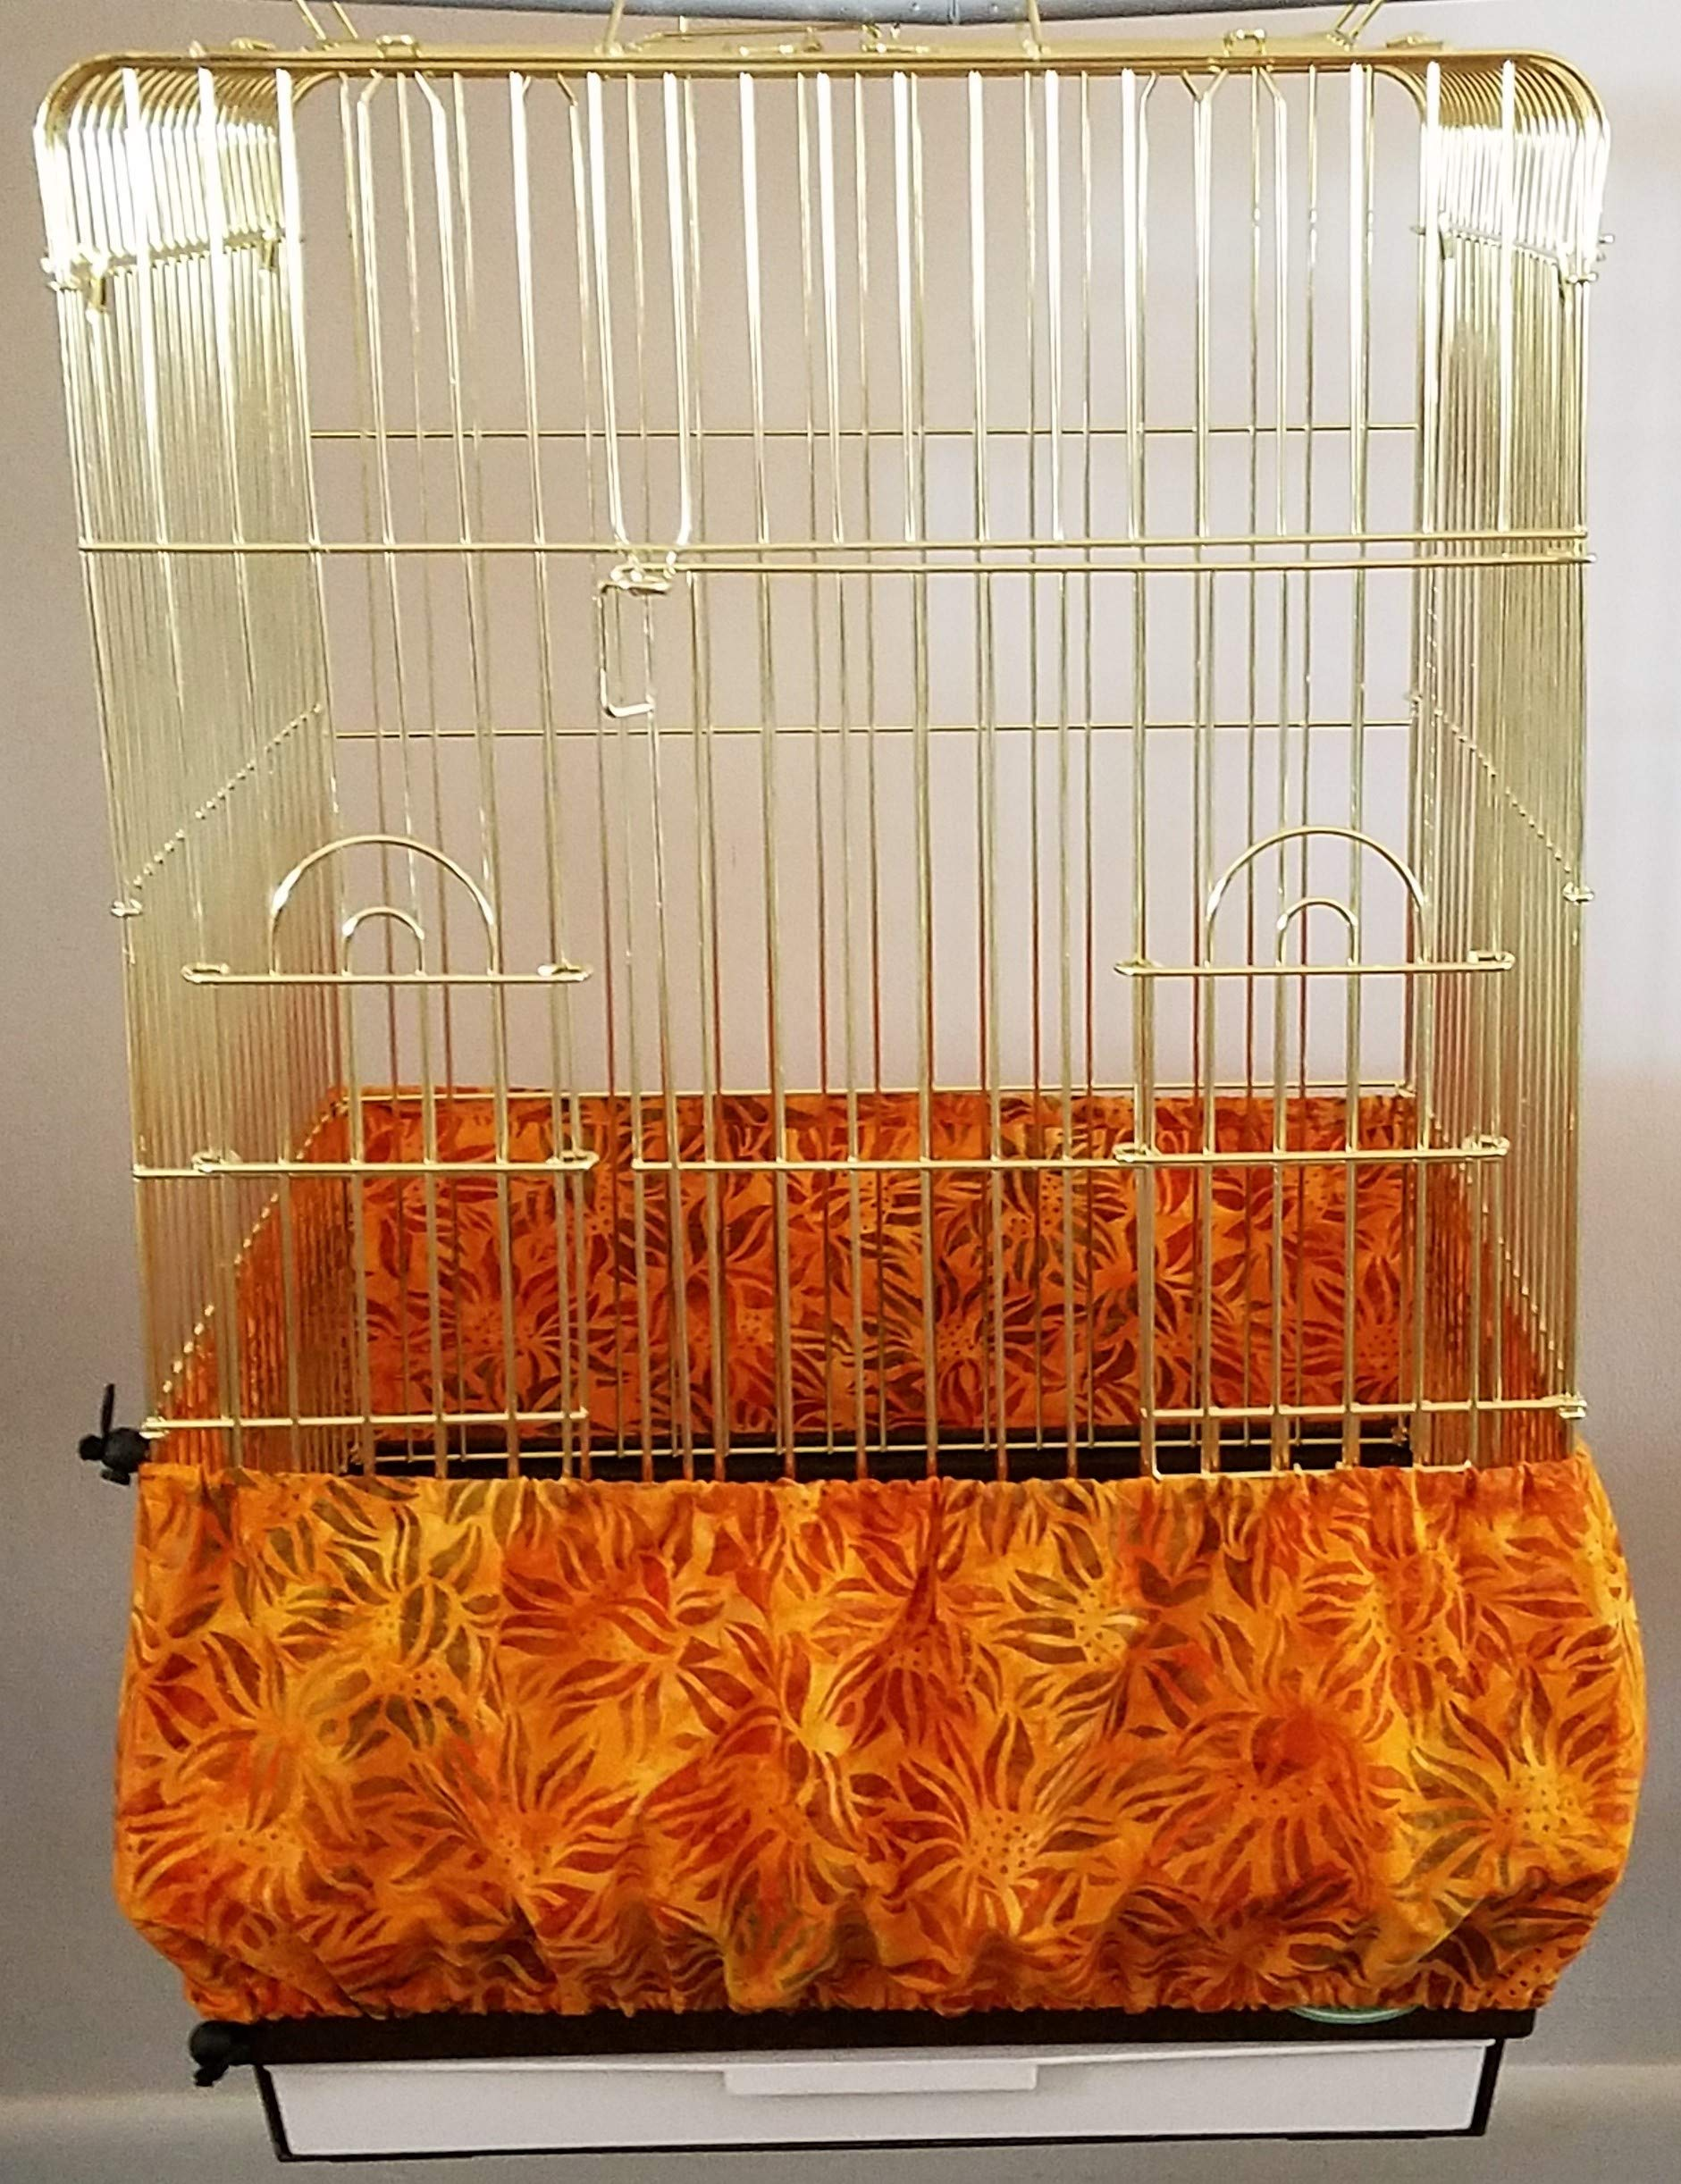 Penn Seed Seed Guard and Catcher Bird Cage Skirt - Indian Summer Sunflowers (Large (50''-100'' Cage Circumference)) by Penn Seed